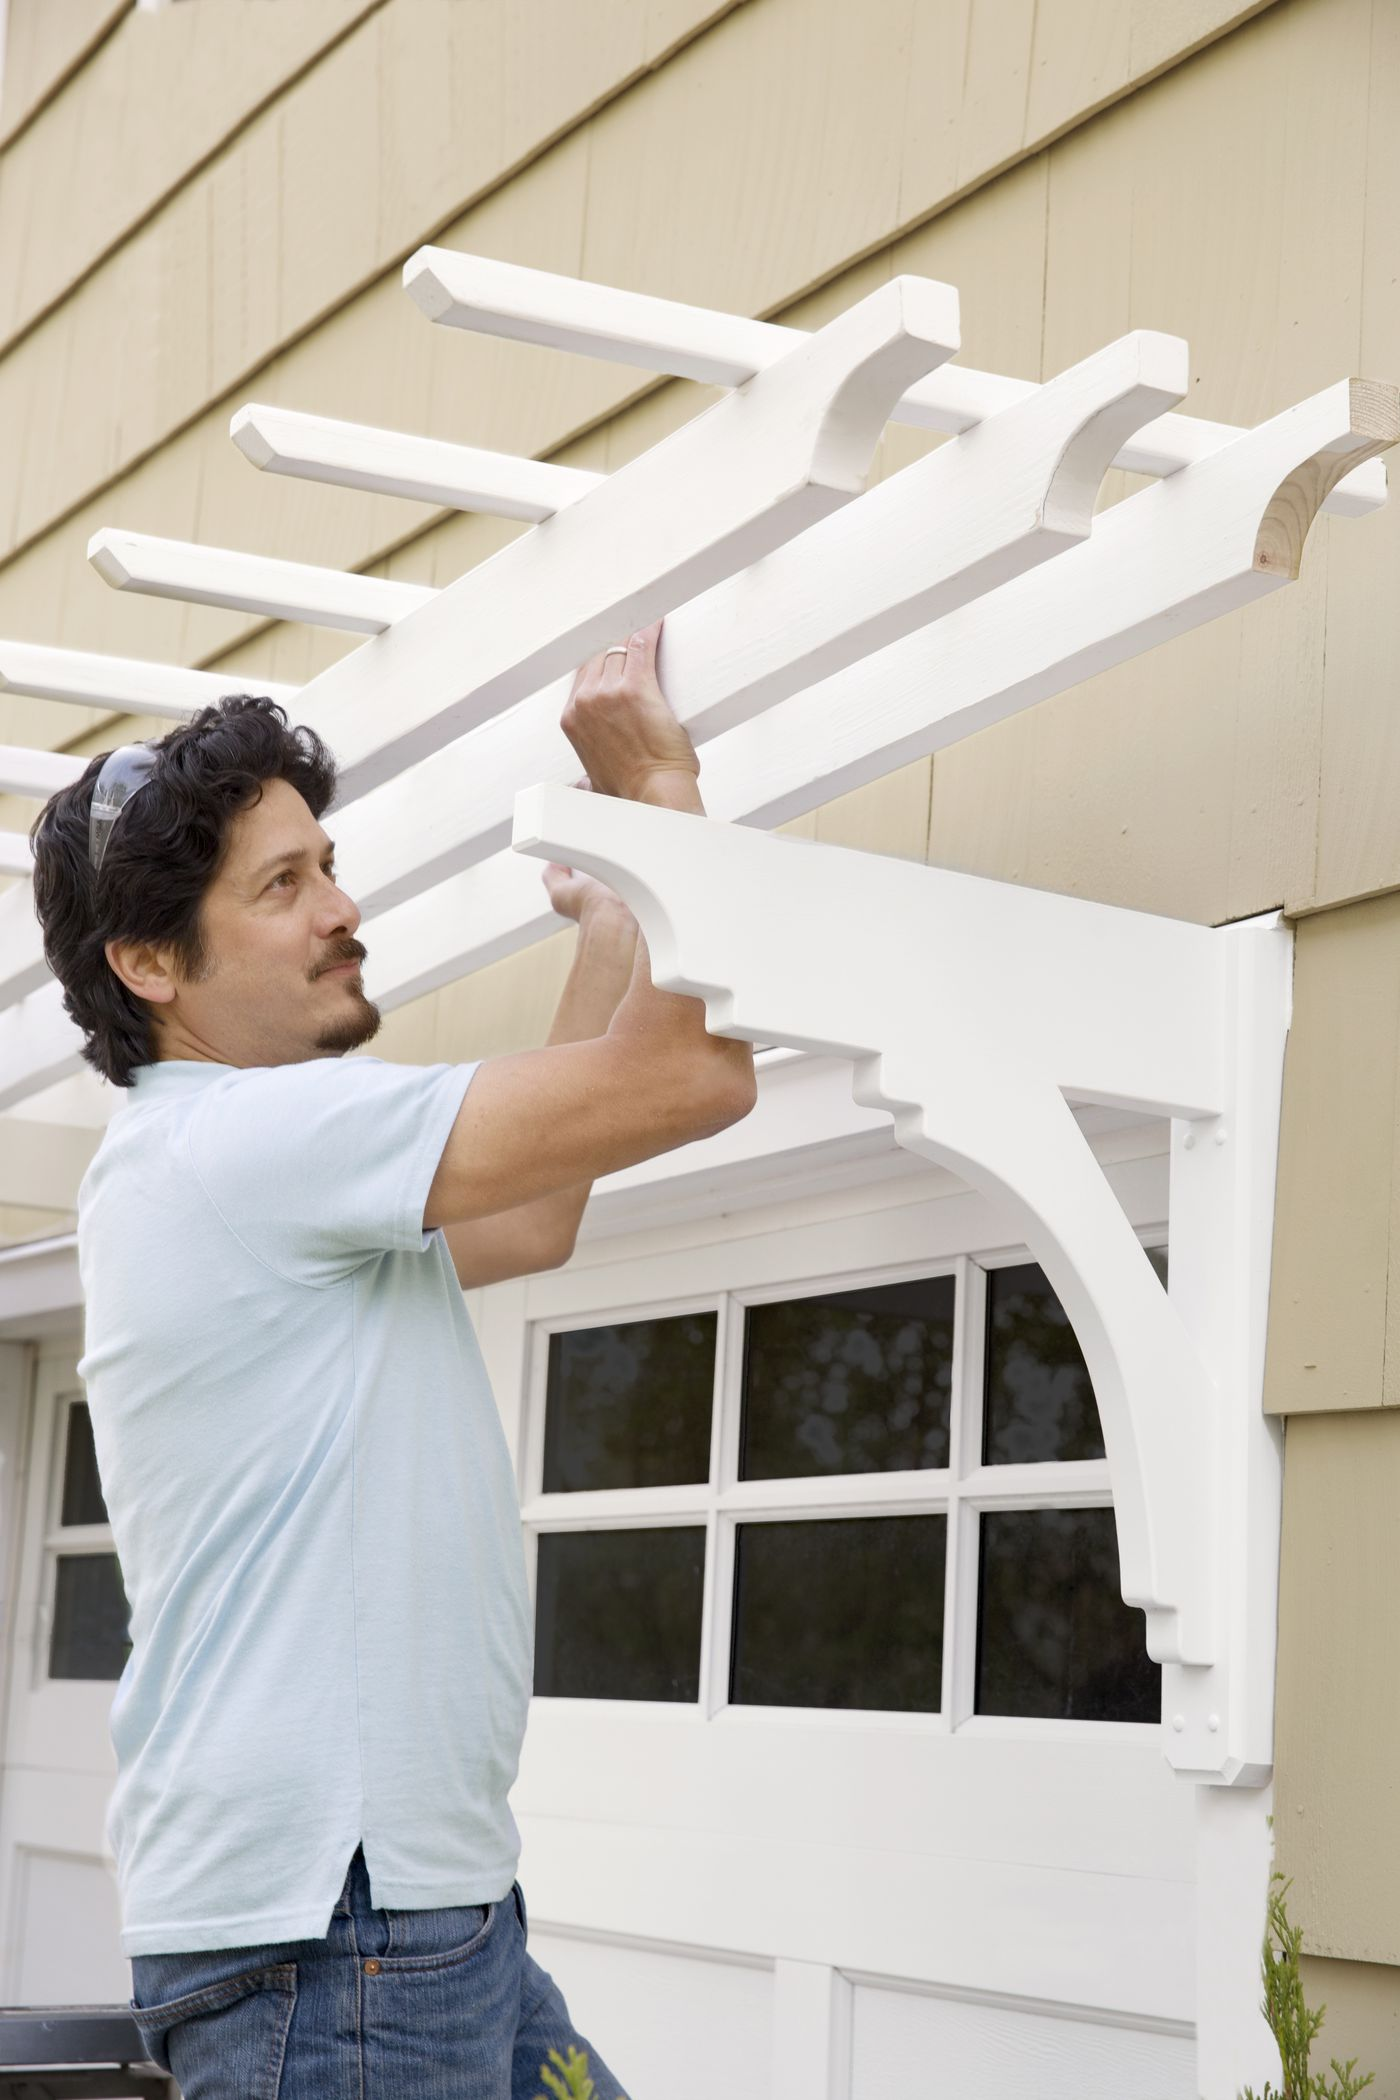 Garage Pergola Build One In 12 Steps This Old House